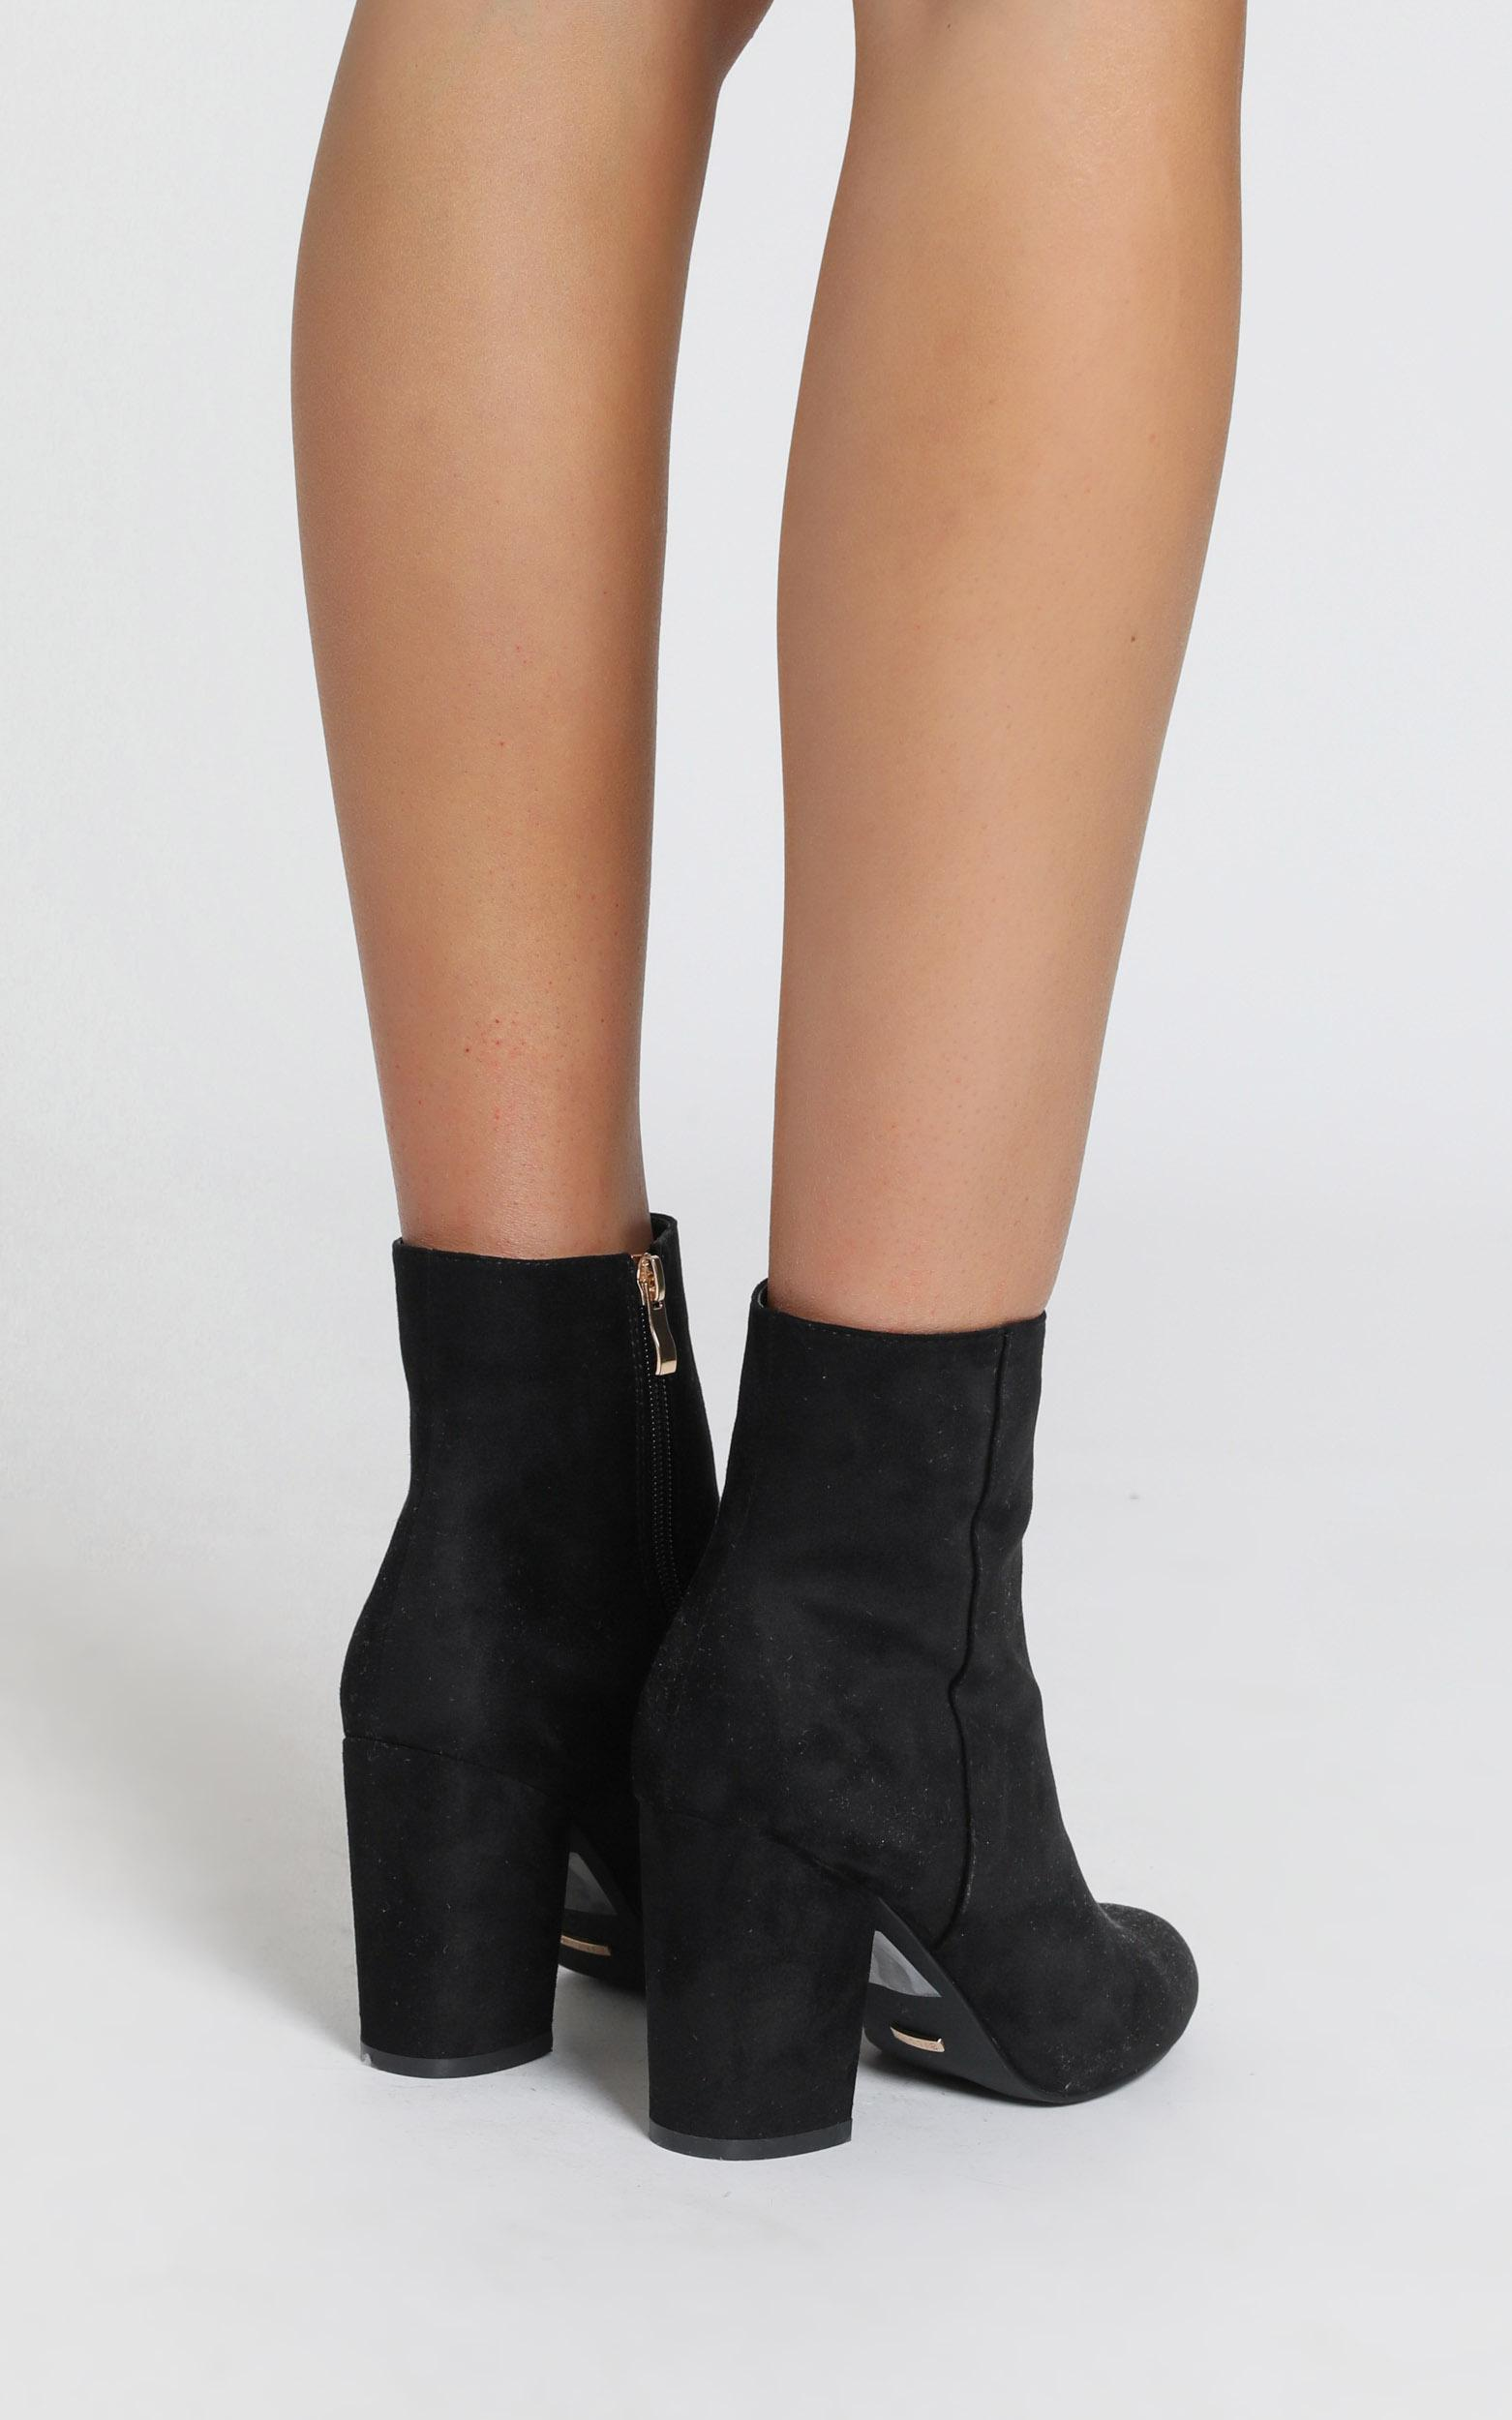 Billini - Darcy Boots in black micro - 5, Black, hi-res image number null